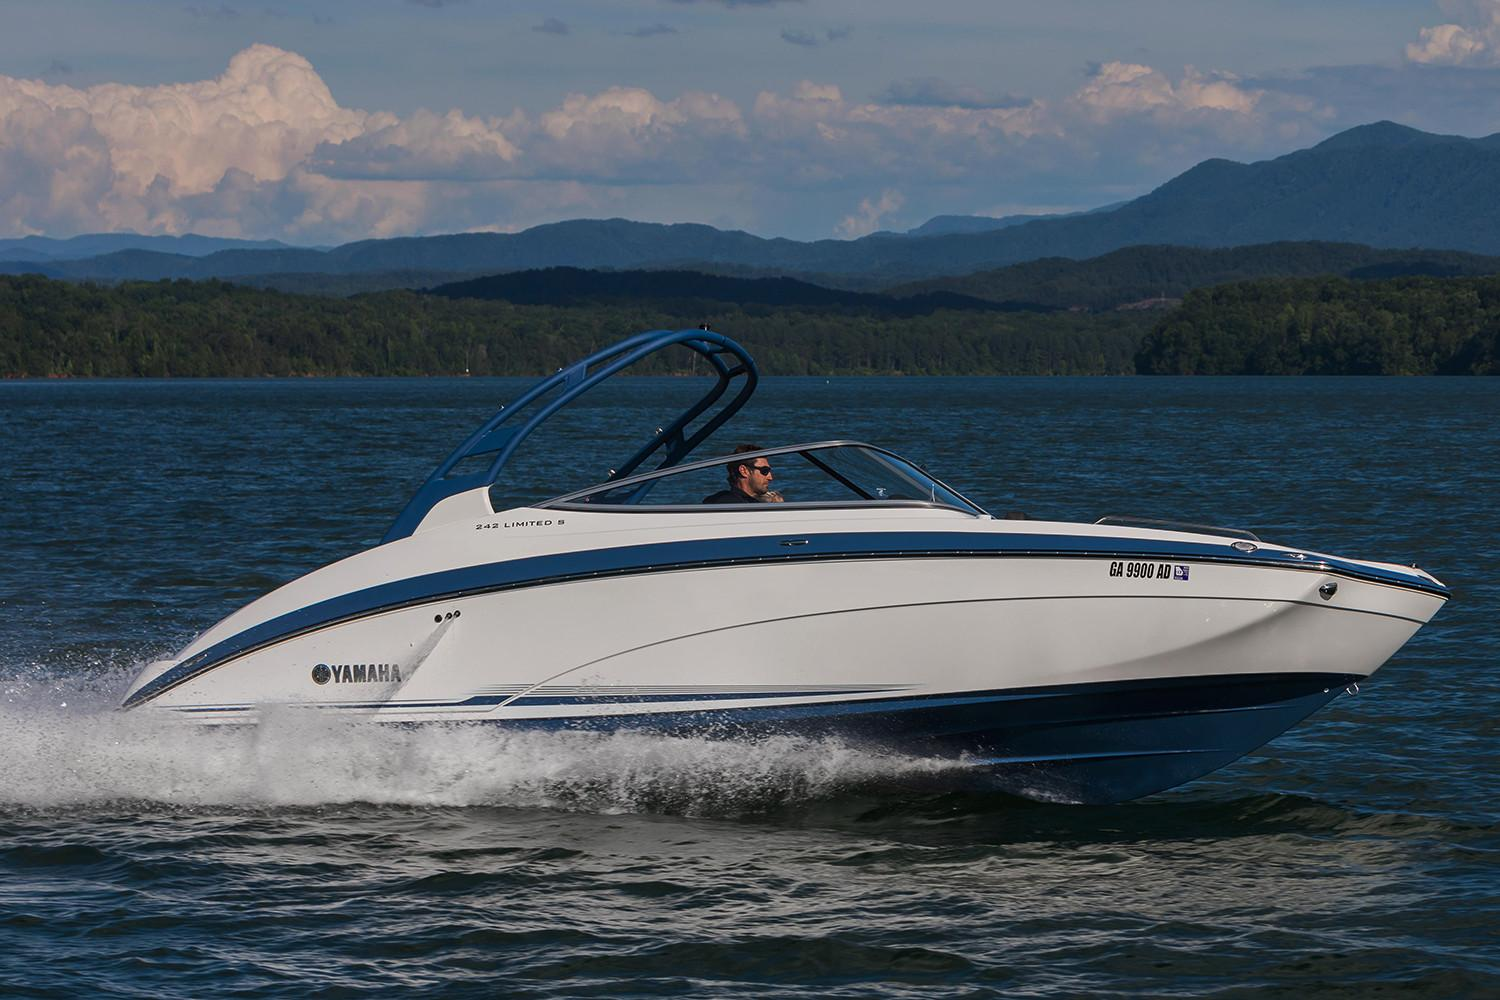 2018 Yamaha 242 Limited S in Bridgeport, New York